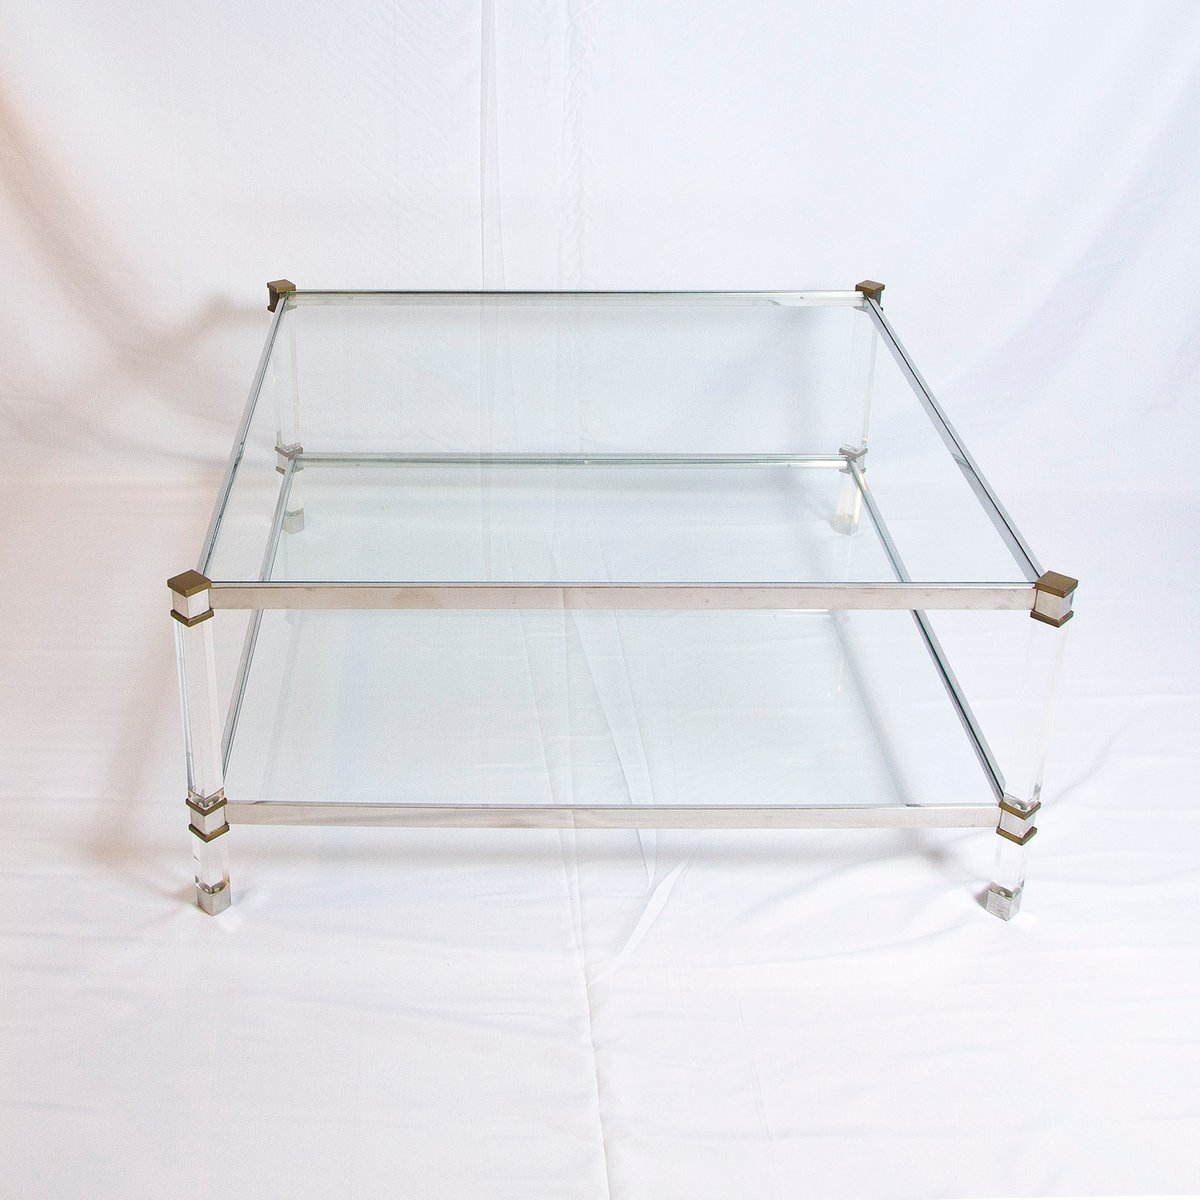 Vintage Two-Tier Lucite, Brass, And Aluminum Coffee Table